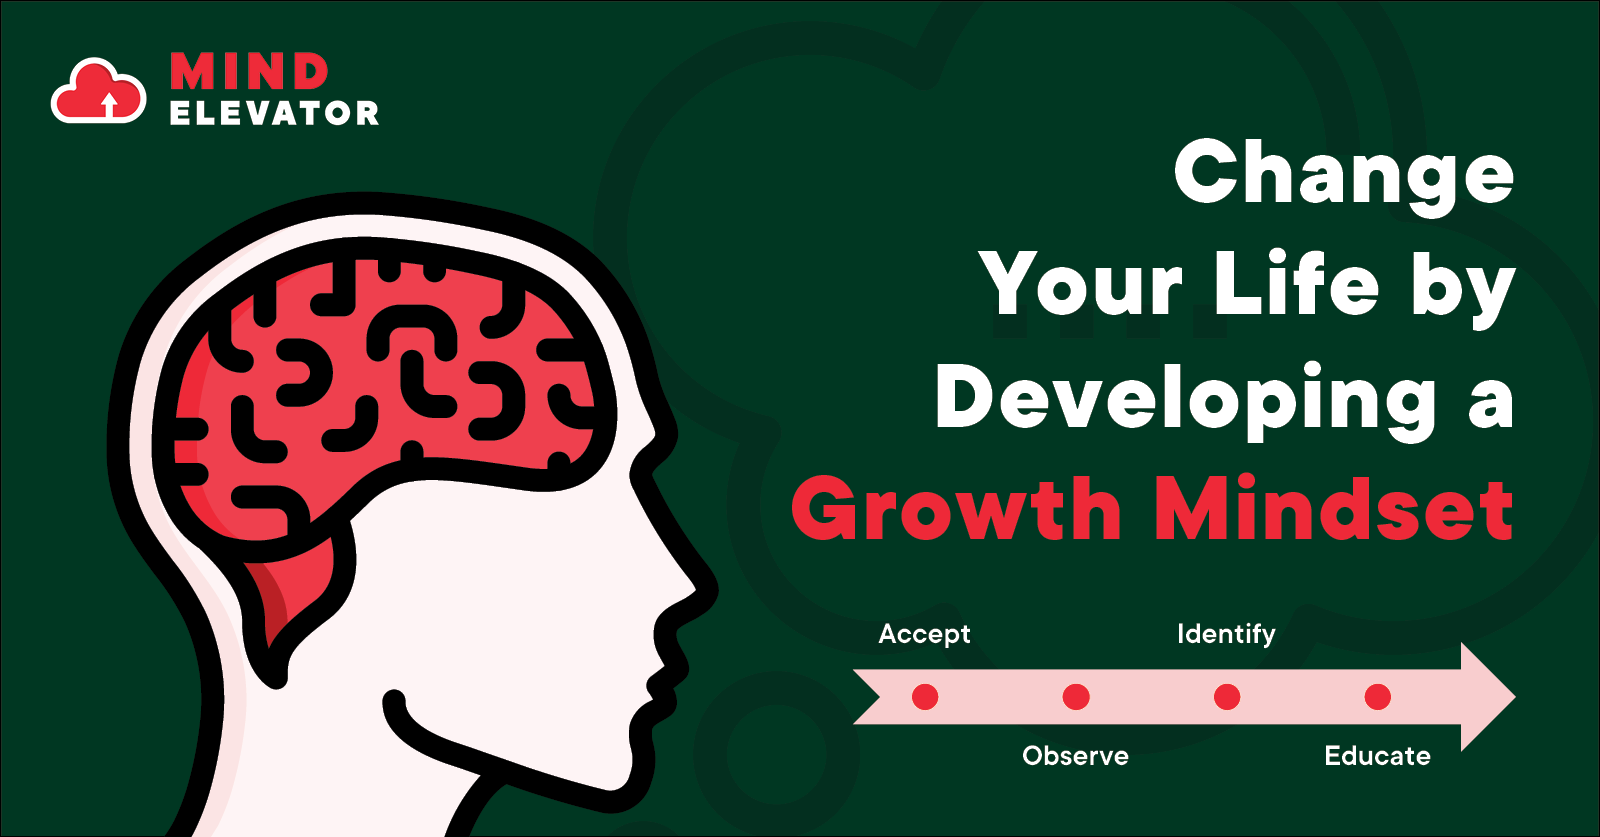 Understand more about the characteristics of a growth mindset and a fixed mindset, and the four steps to adopt a growth mindset.